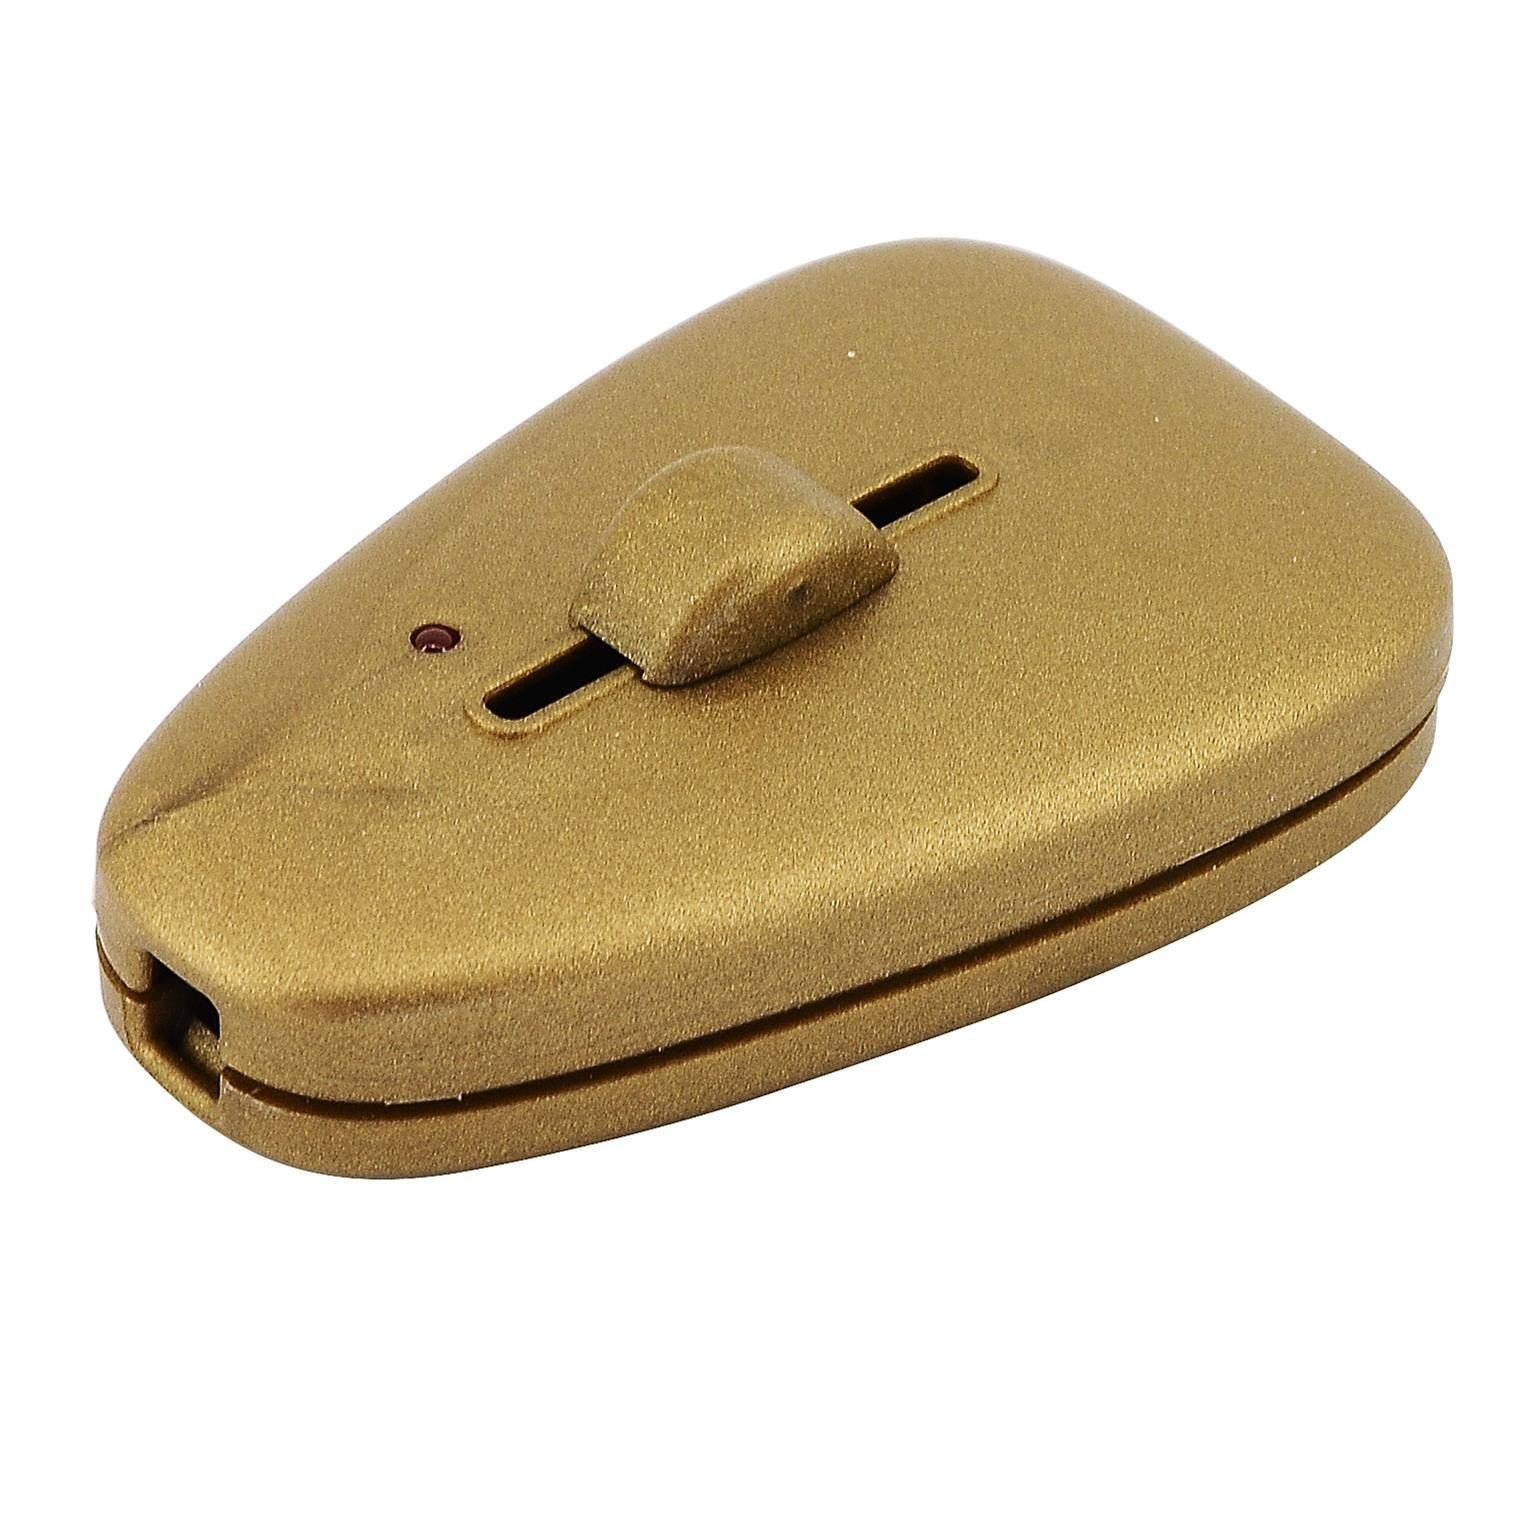 Install your own dimmer slide dimmer switch 240v gold 160w home slide dimmer switch gold by mr resistor we carry large stocks of quality slide dimmer switch gold products we have extended our interests to include a greentooth Images